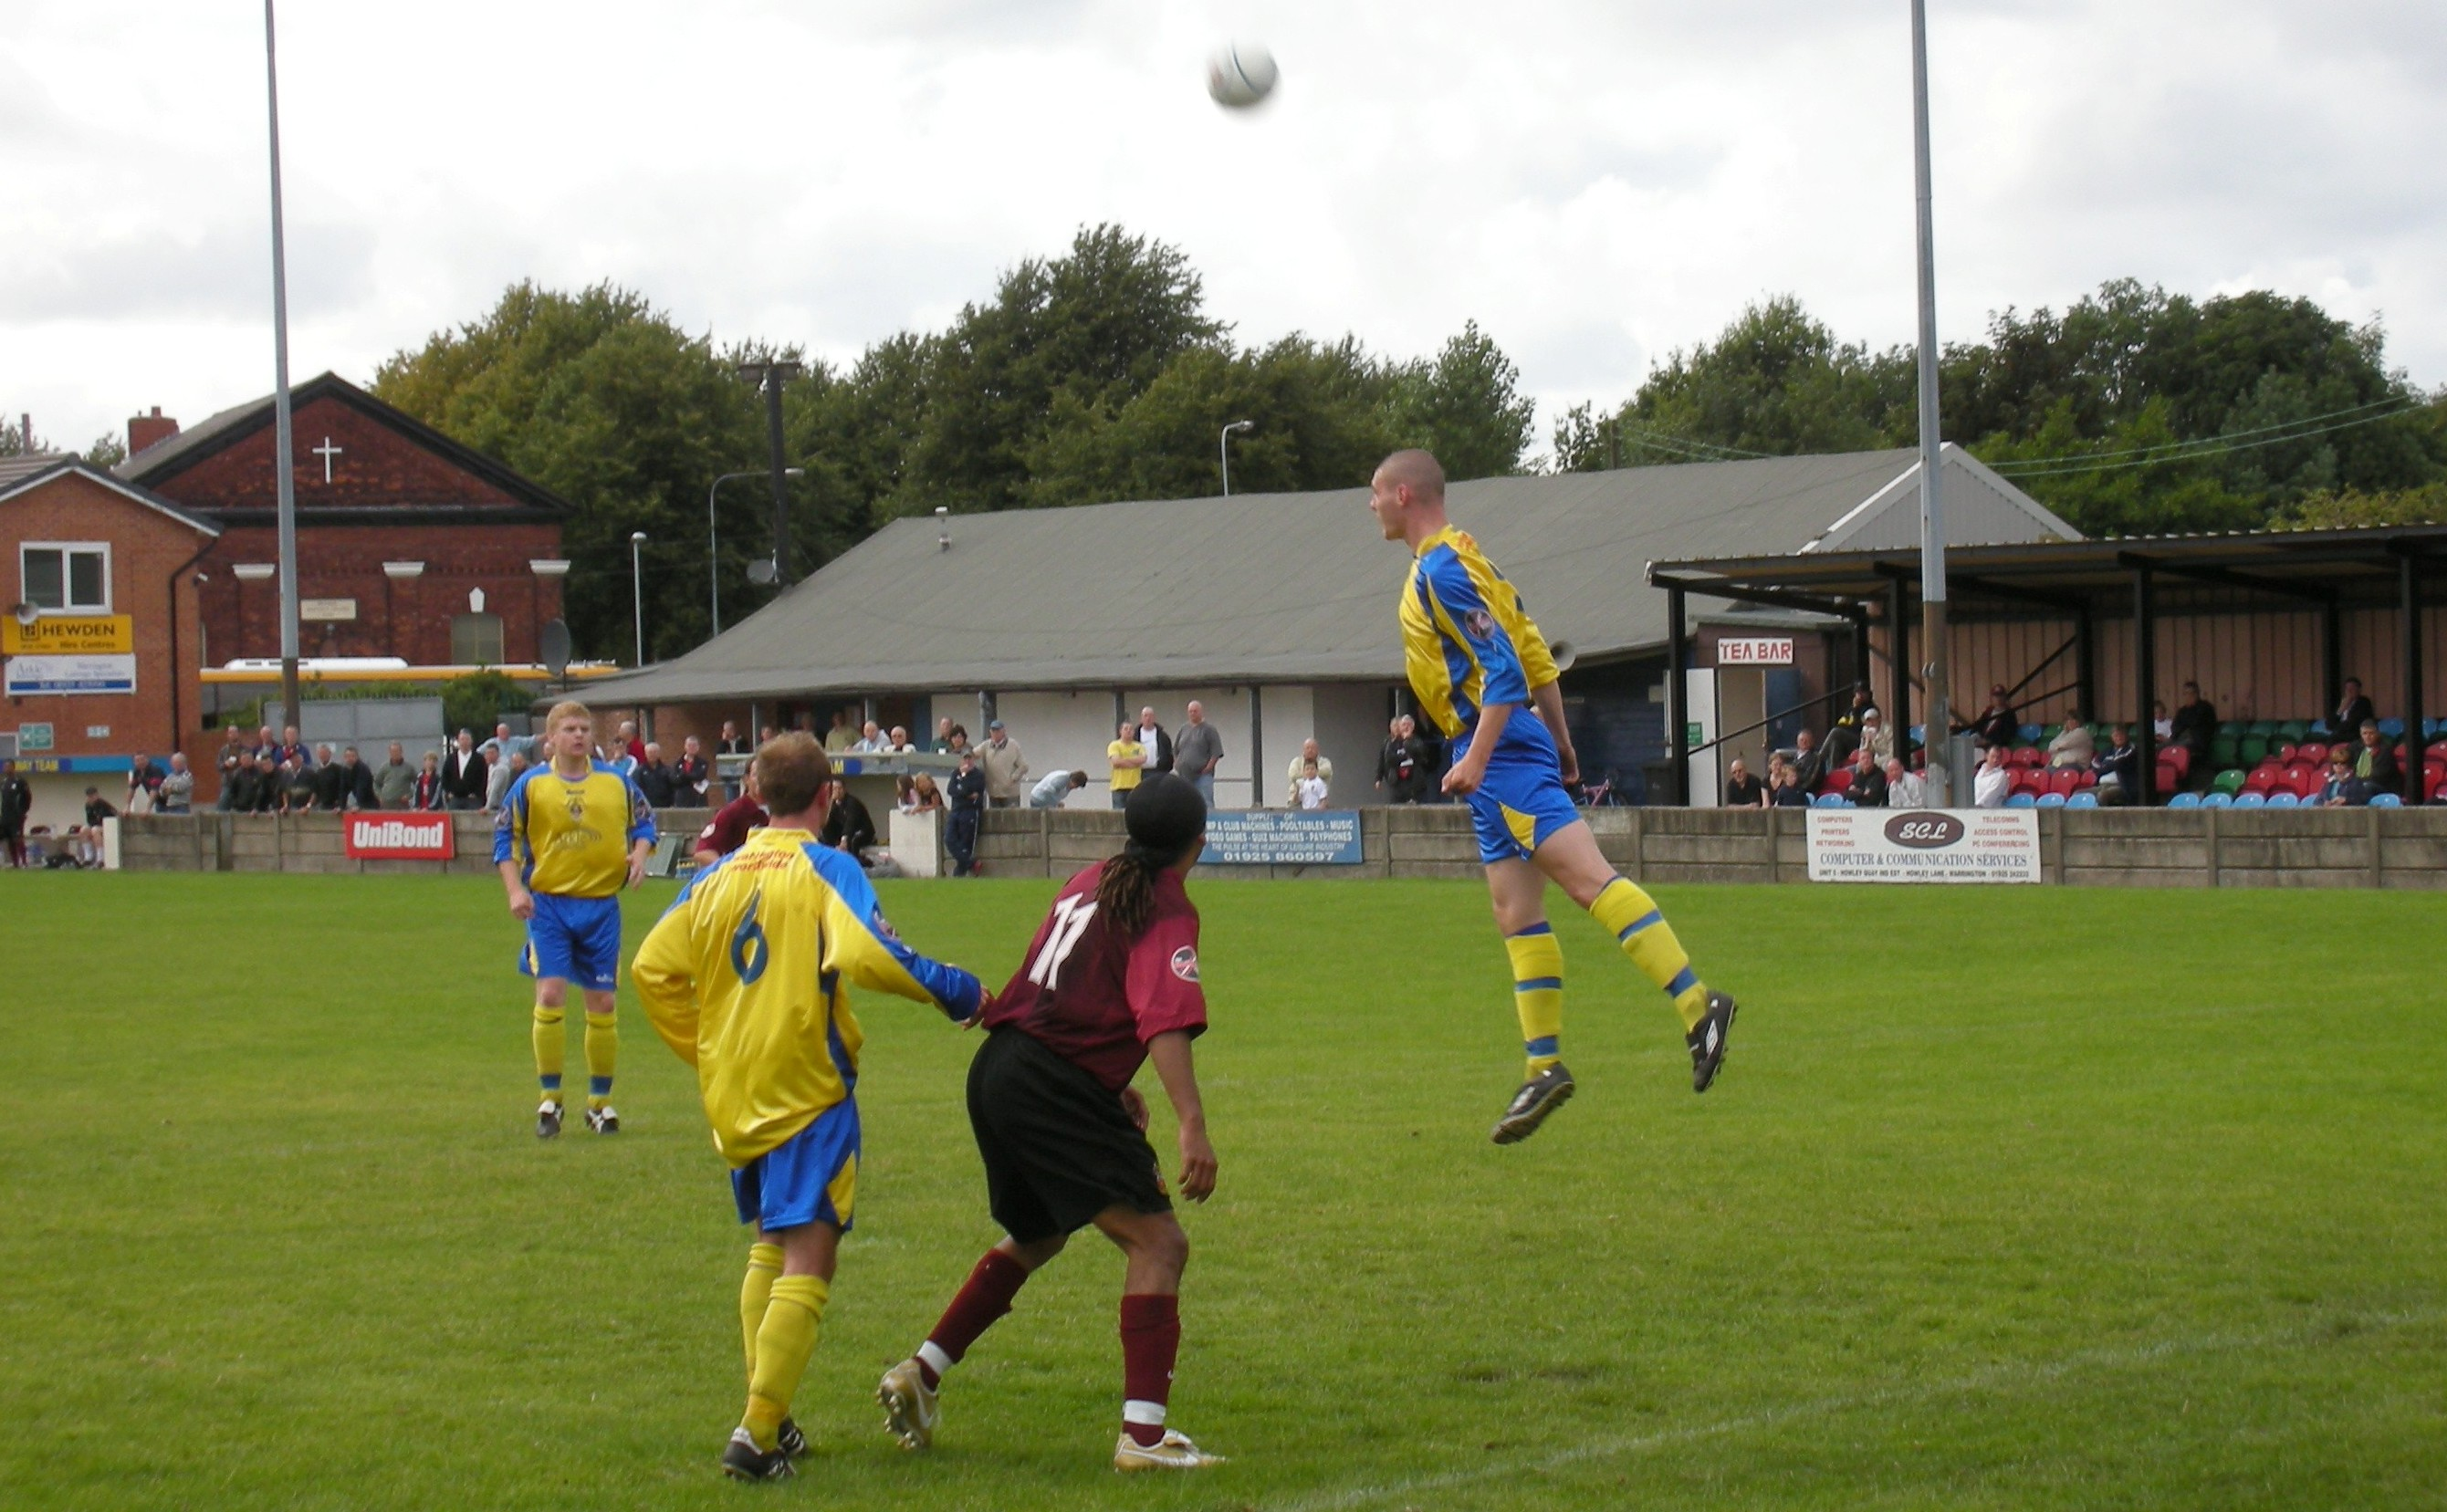 warringtontown270807a.jpg